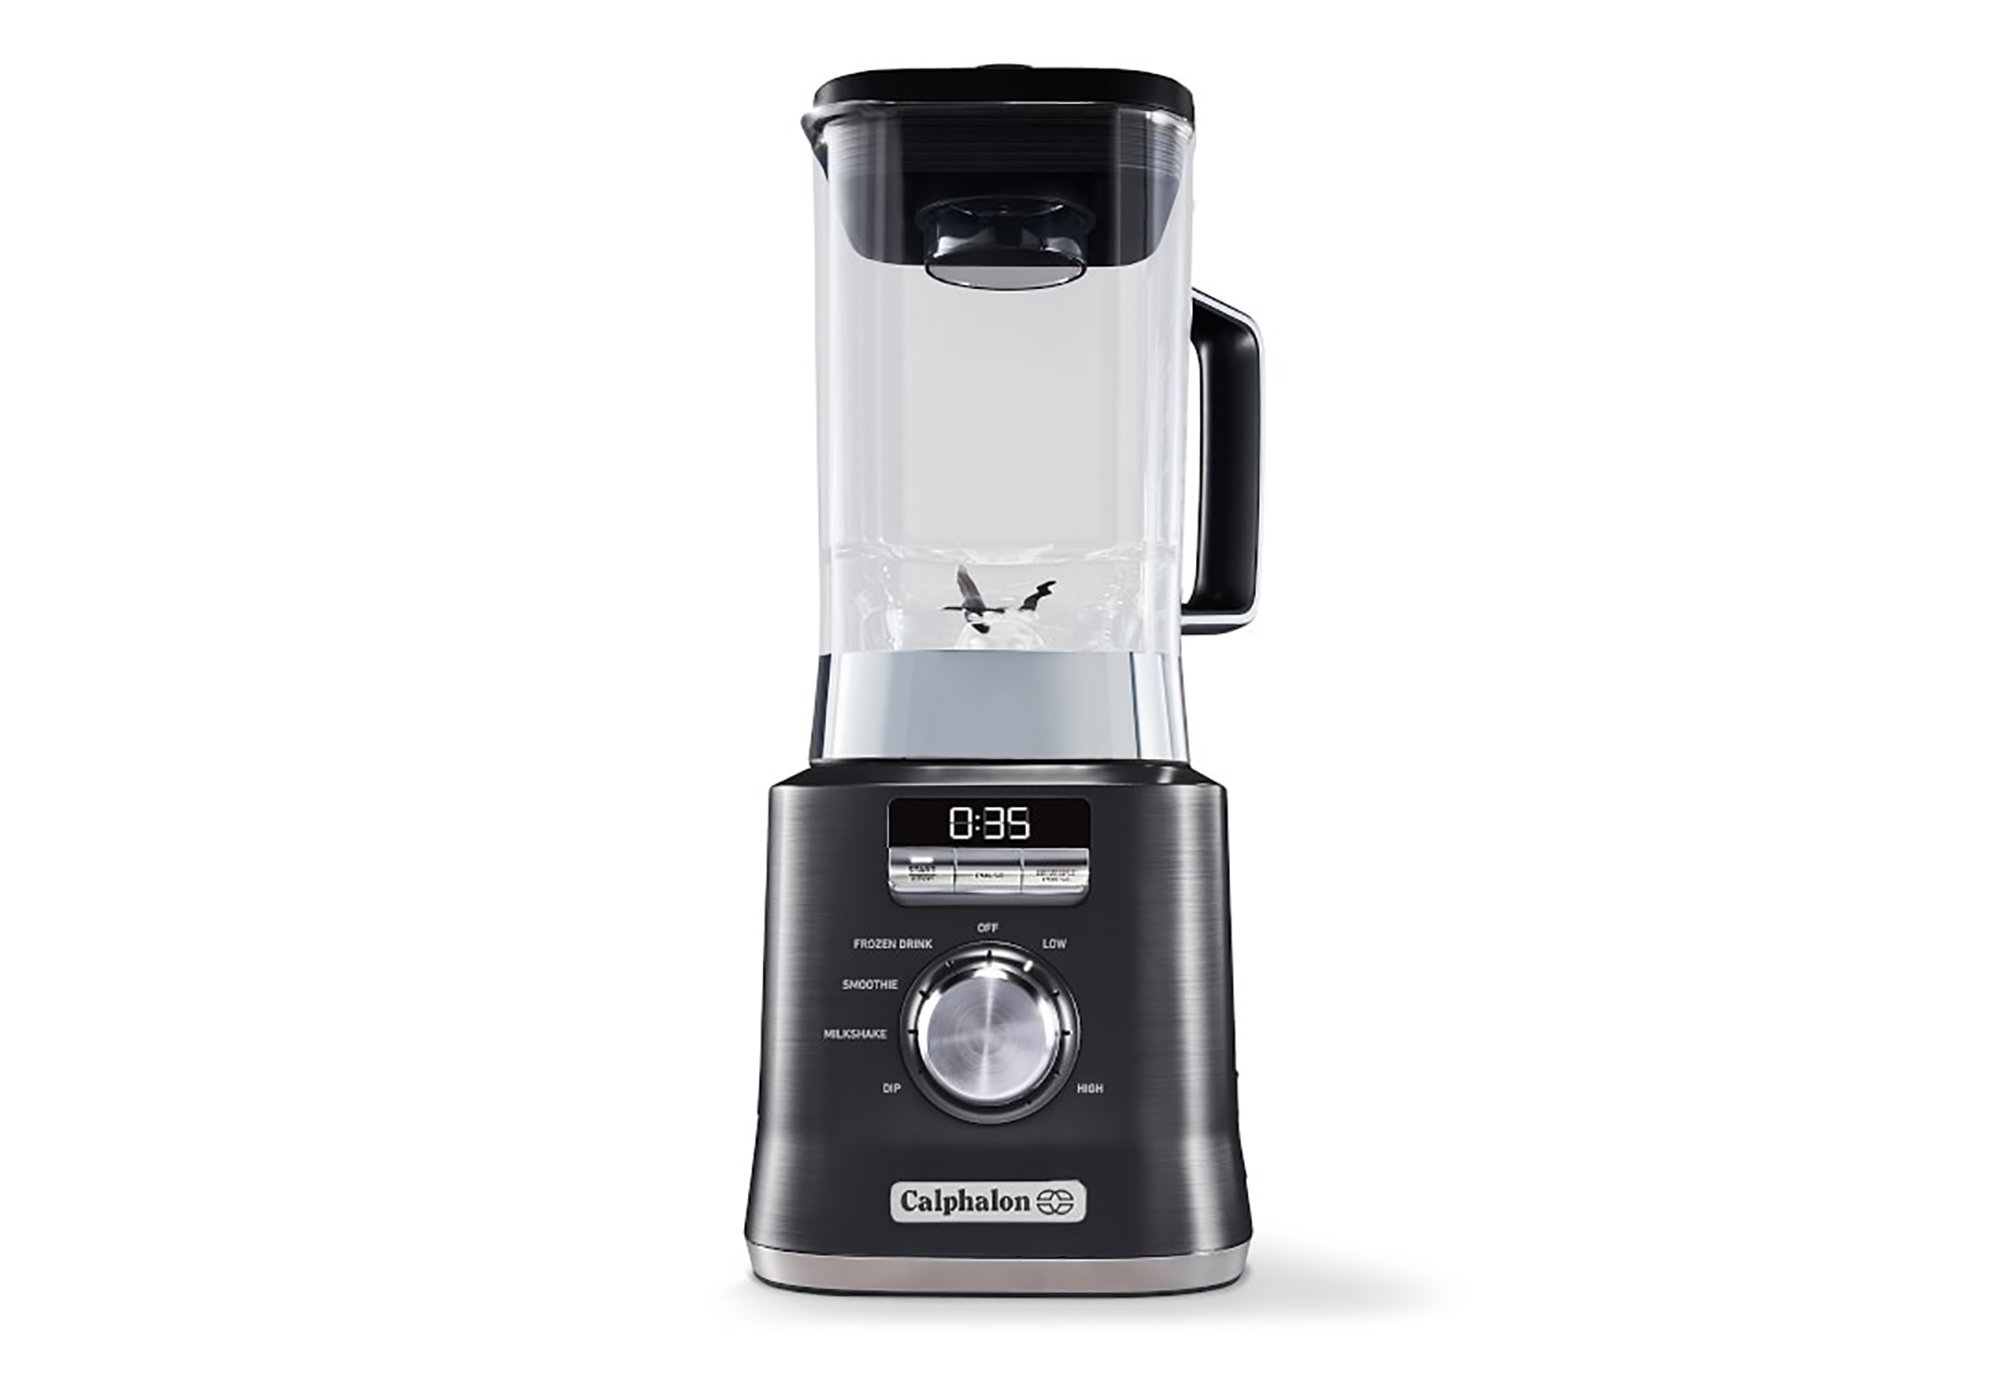 The Insanely Good Household Appliances on Our Black Friday and Cyber Monday Wish List 78c52dc7a56de9788db69c45c123794a